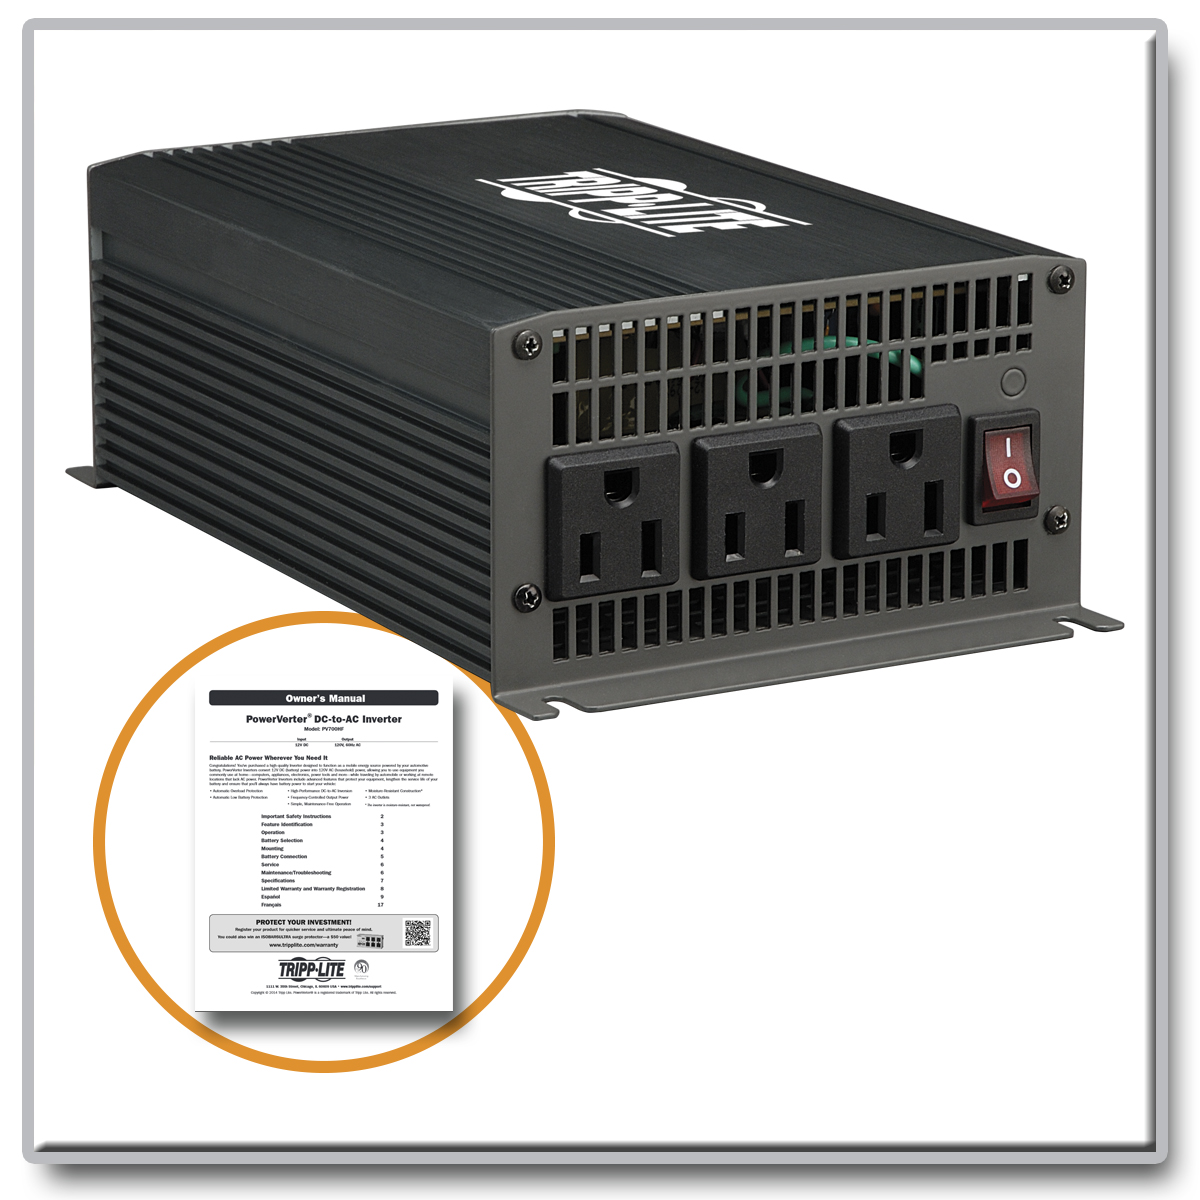 Tripplite Pv700hf Powerverter 700w Ultra Compact Dc To Ac Inverter Srcool12k Portable Unit Wiring Diagram Provide Reliable Power From A Car Battery Devices